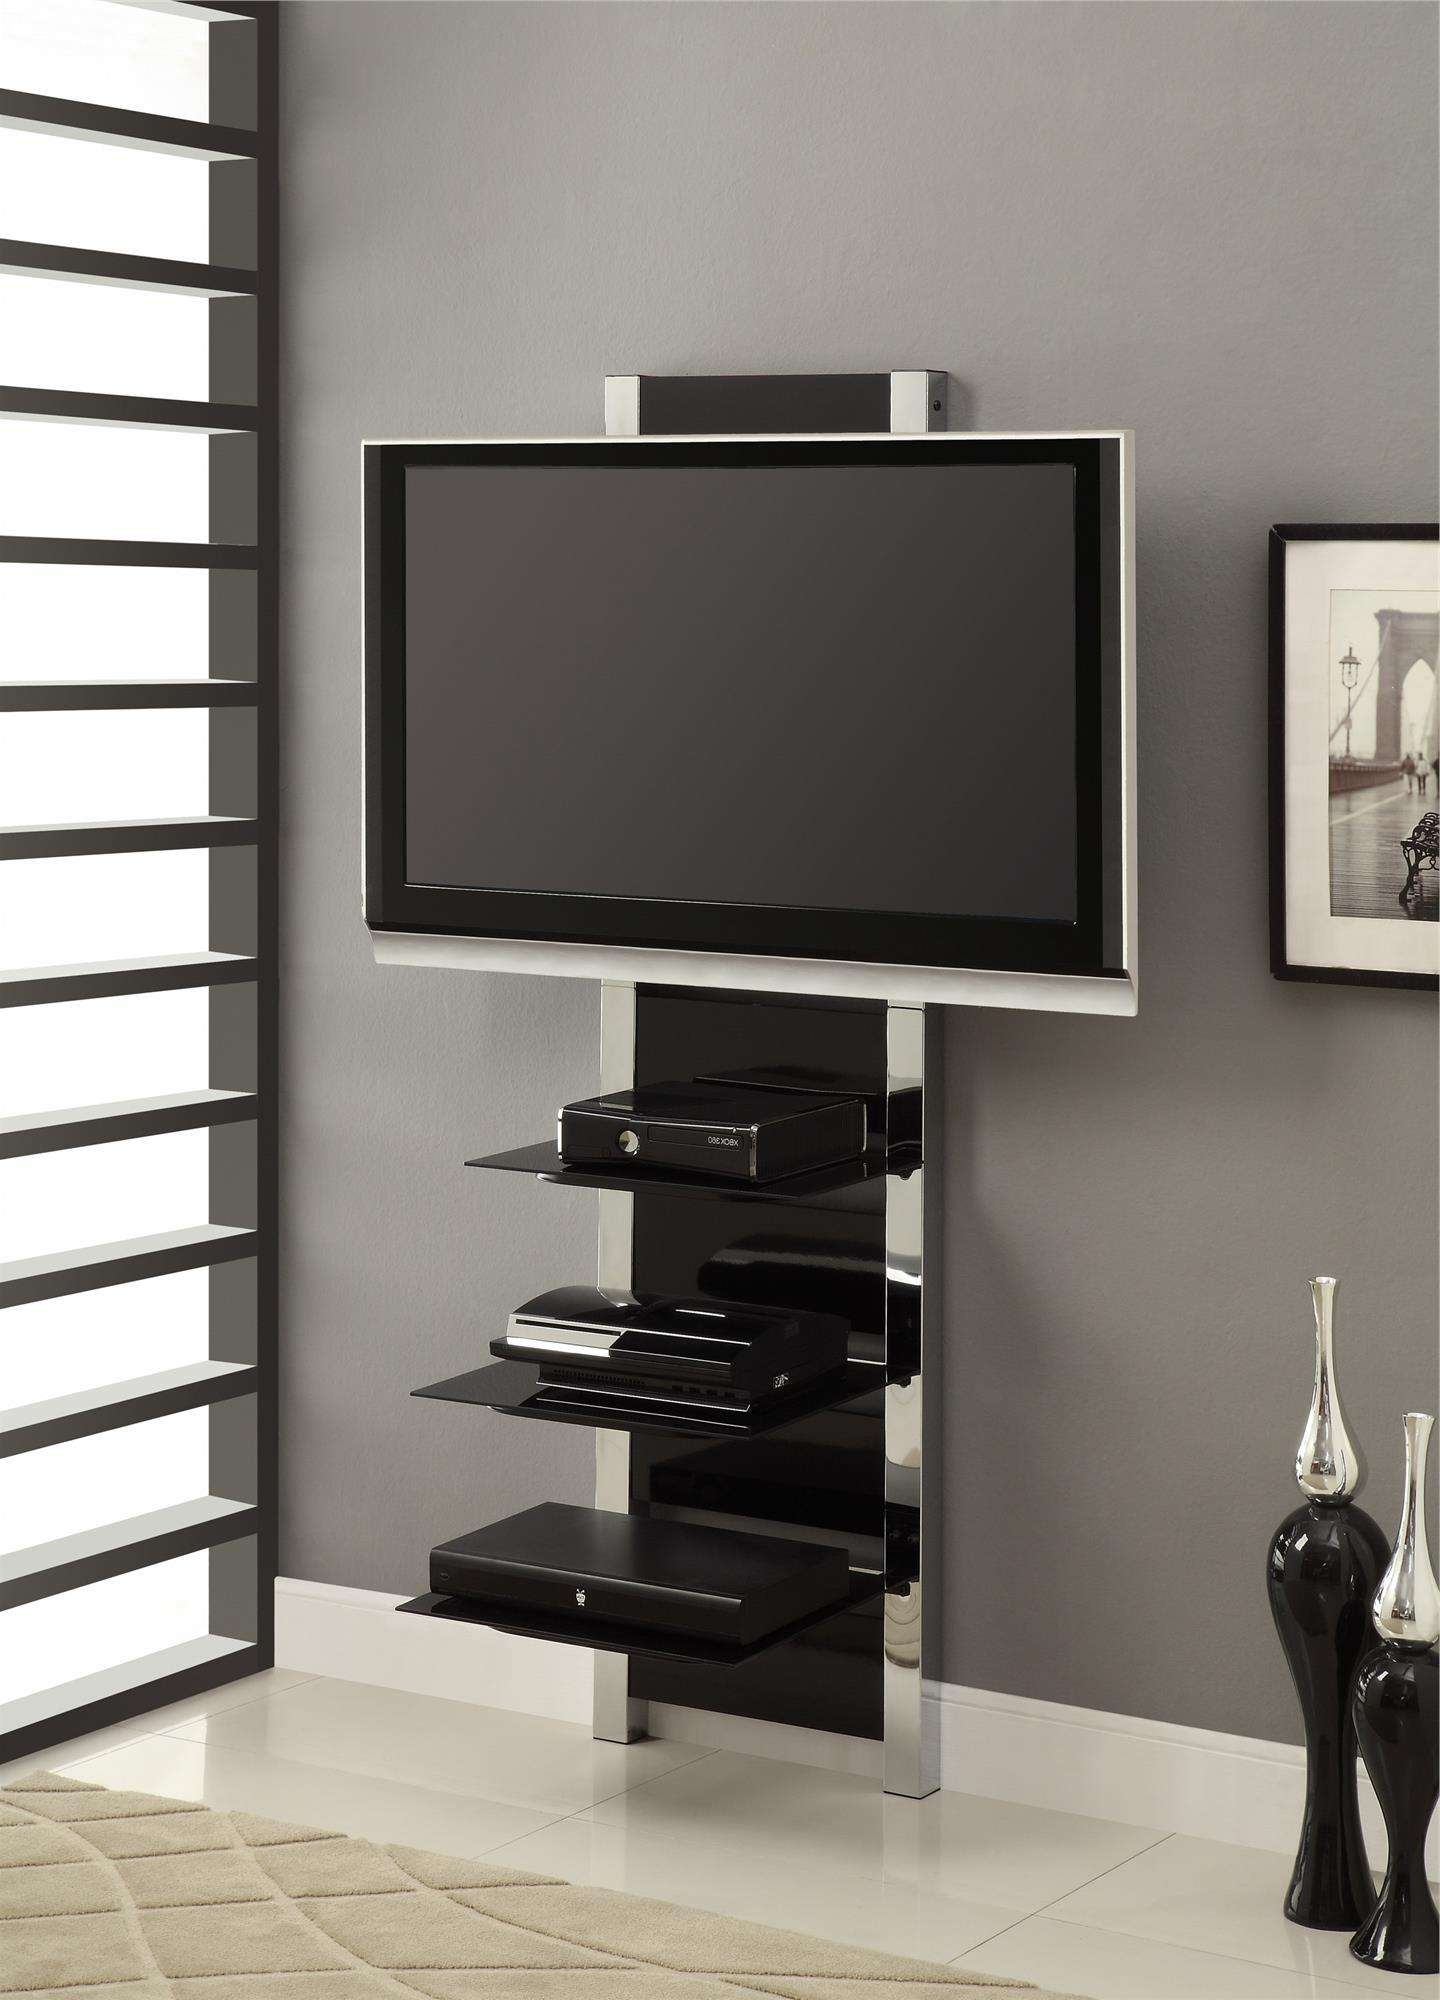 Ameriwood Furniture | Altra Furniture Altramount Modern Tv Stand Within Skinny Tv Stands (View 1 of 15)